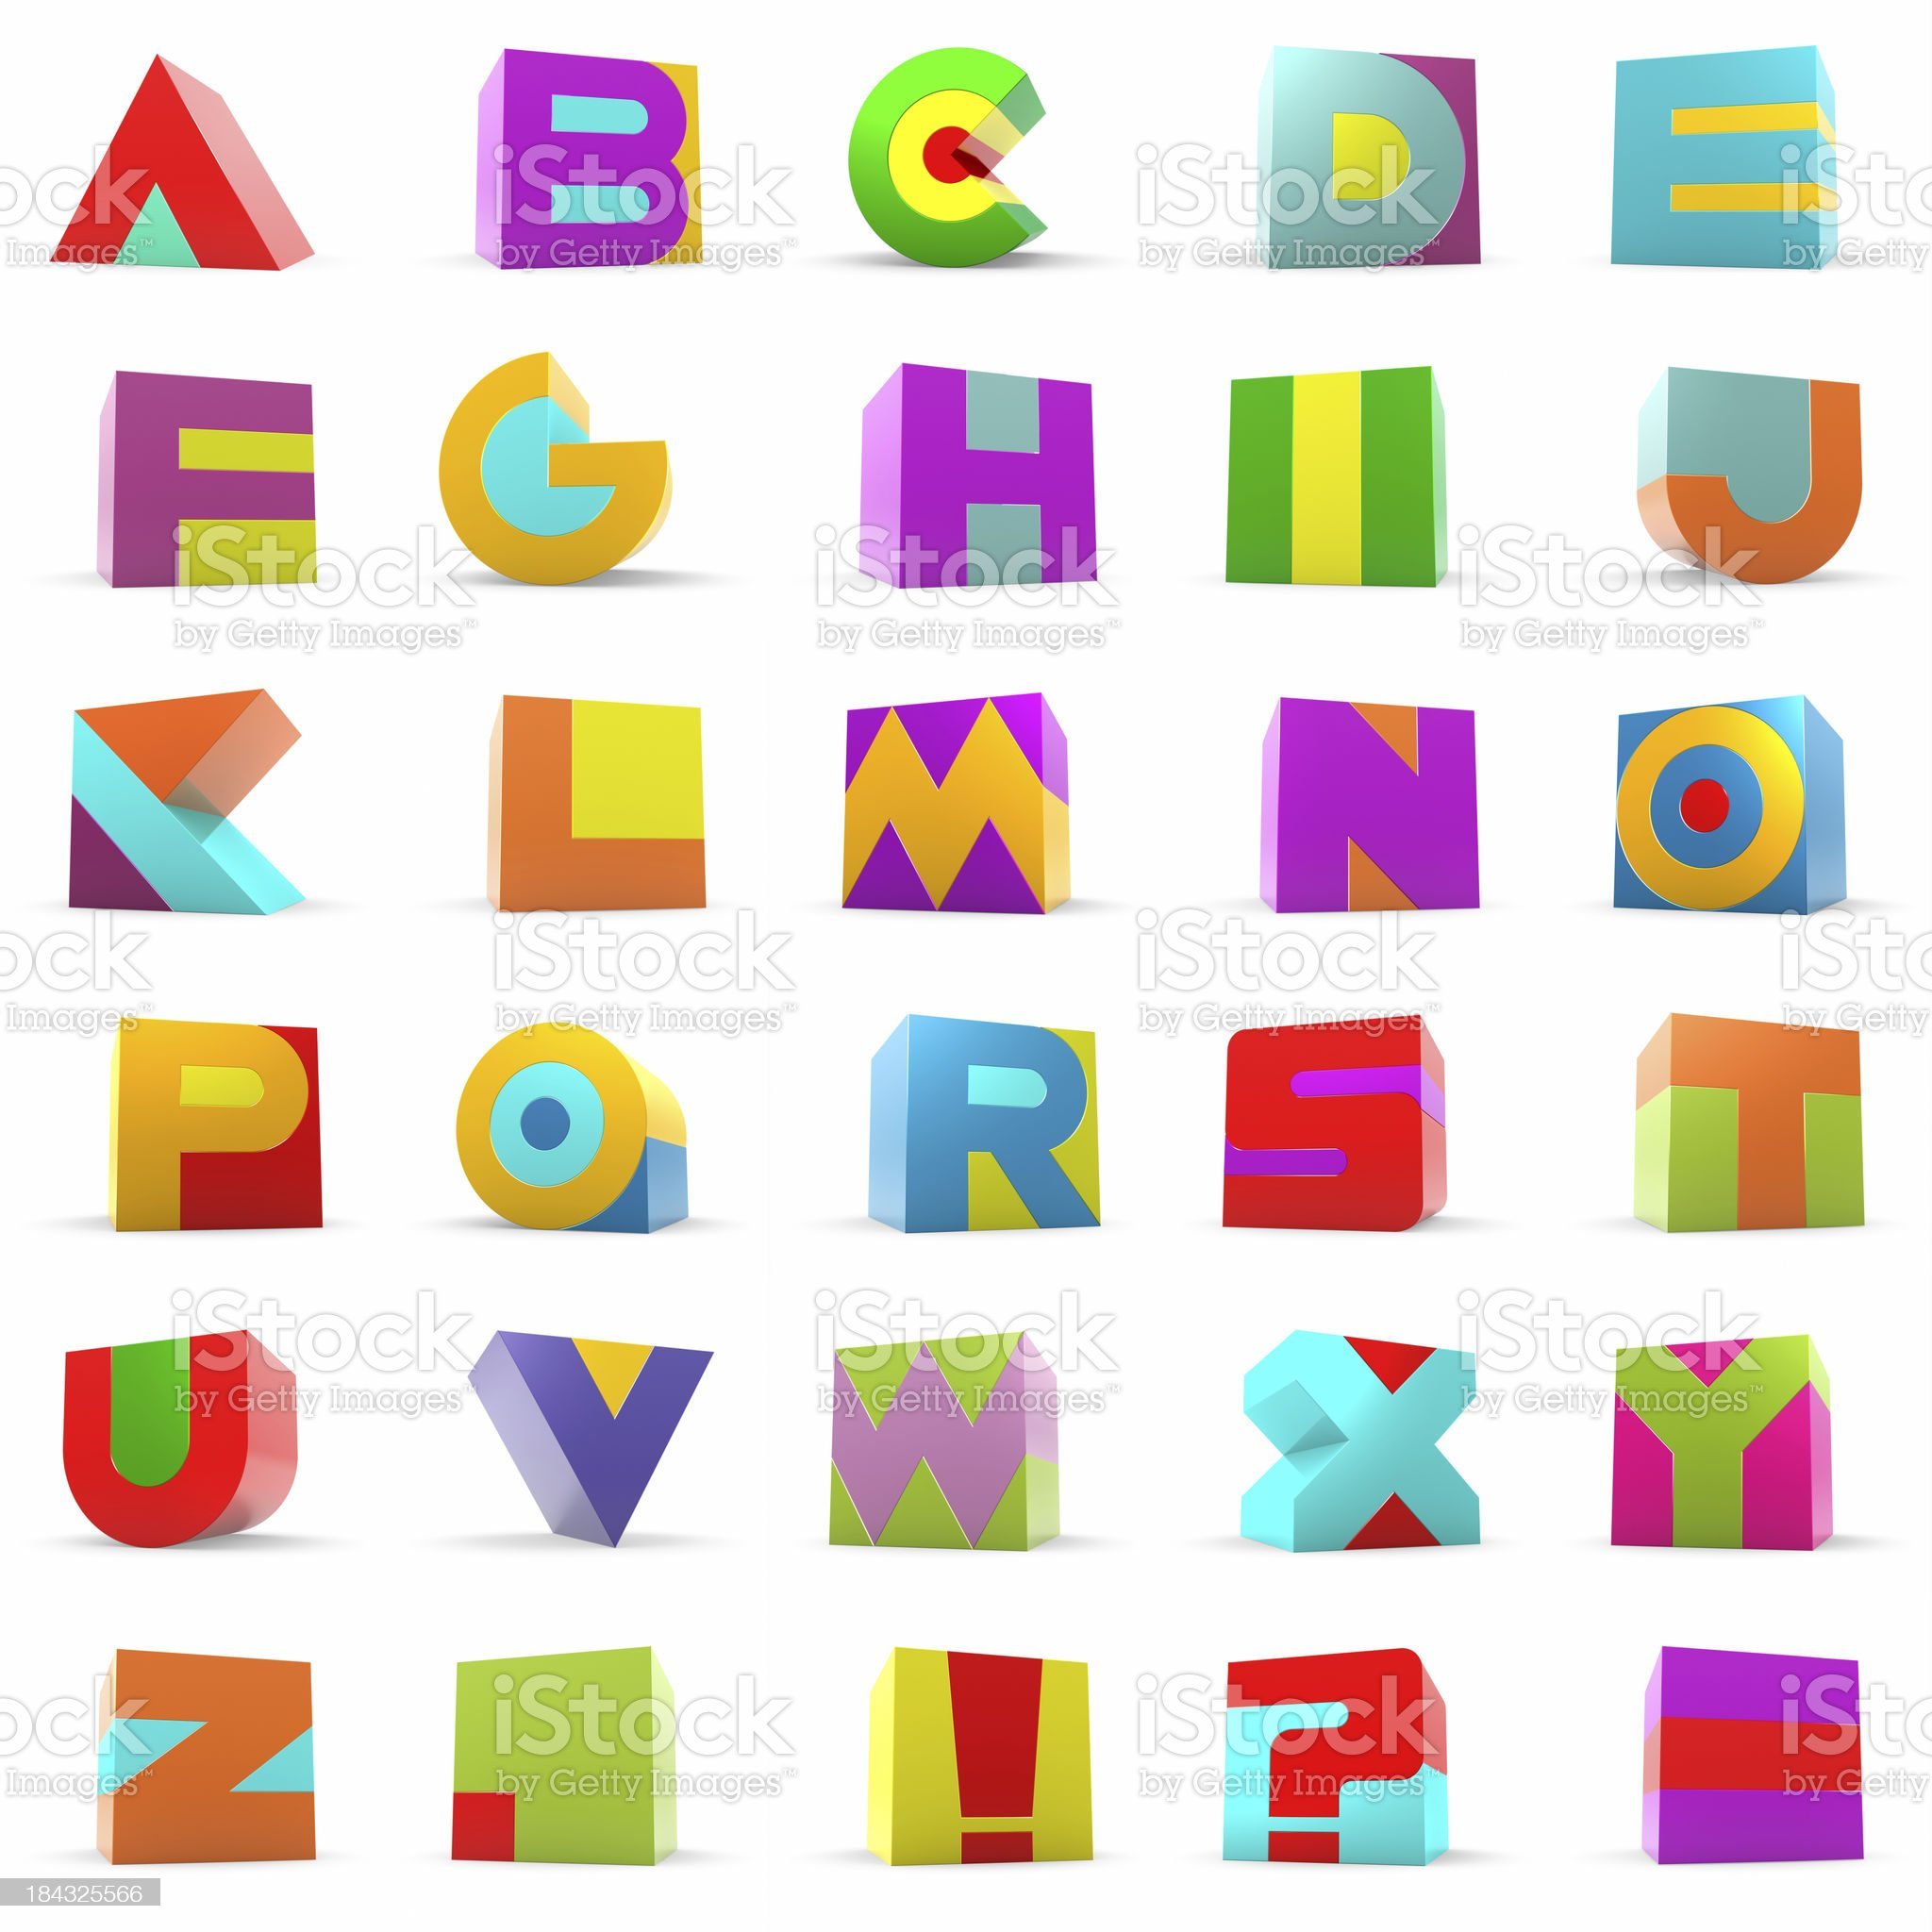 Toy Block Alphabet Letters royalty-free stock photo